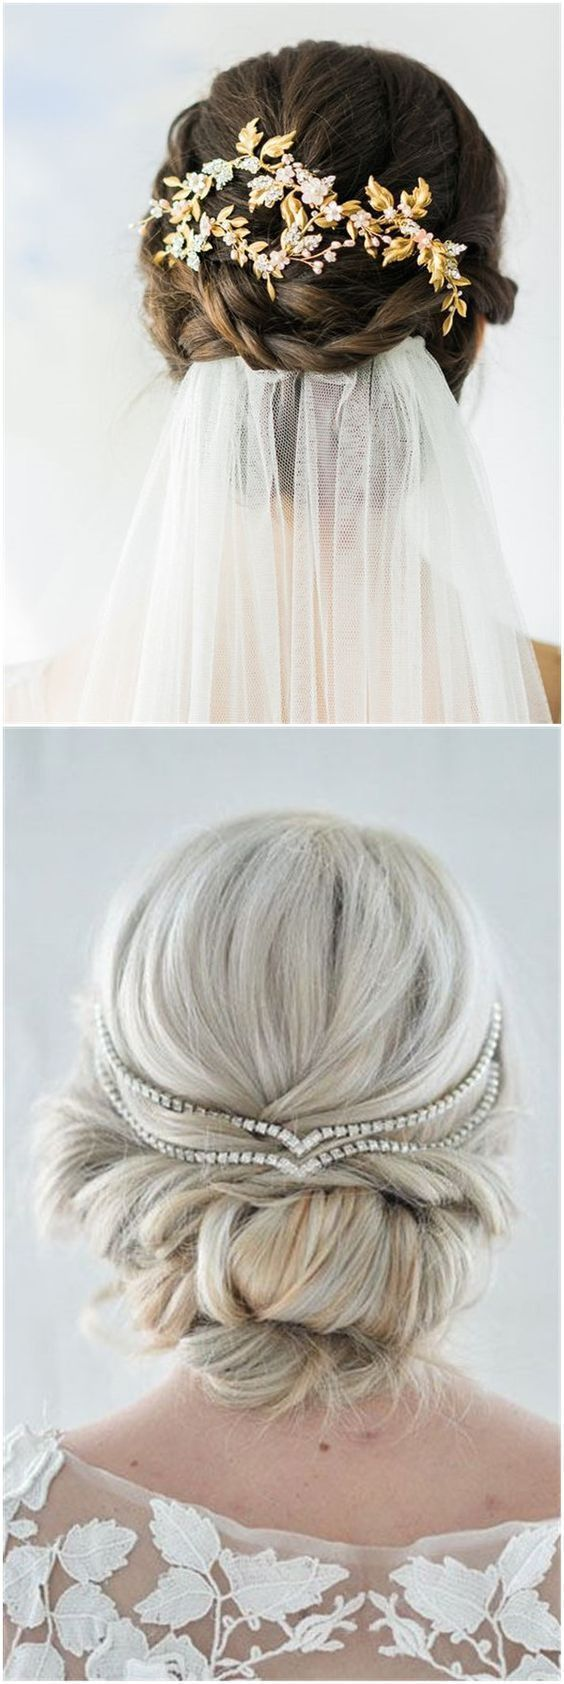 11 Cute & Romantic Hairstyle Ideas For Wedding